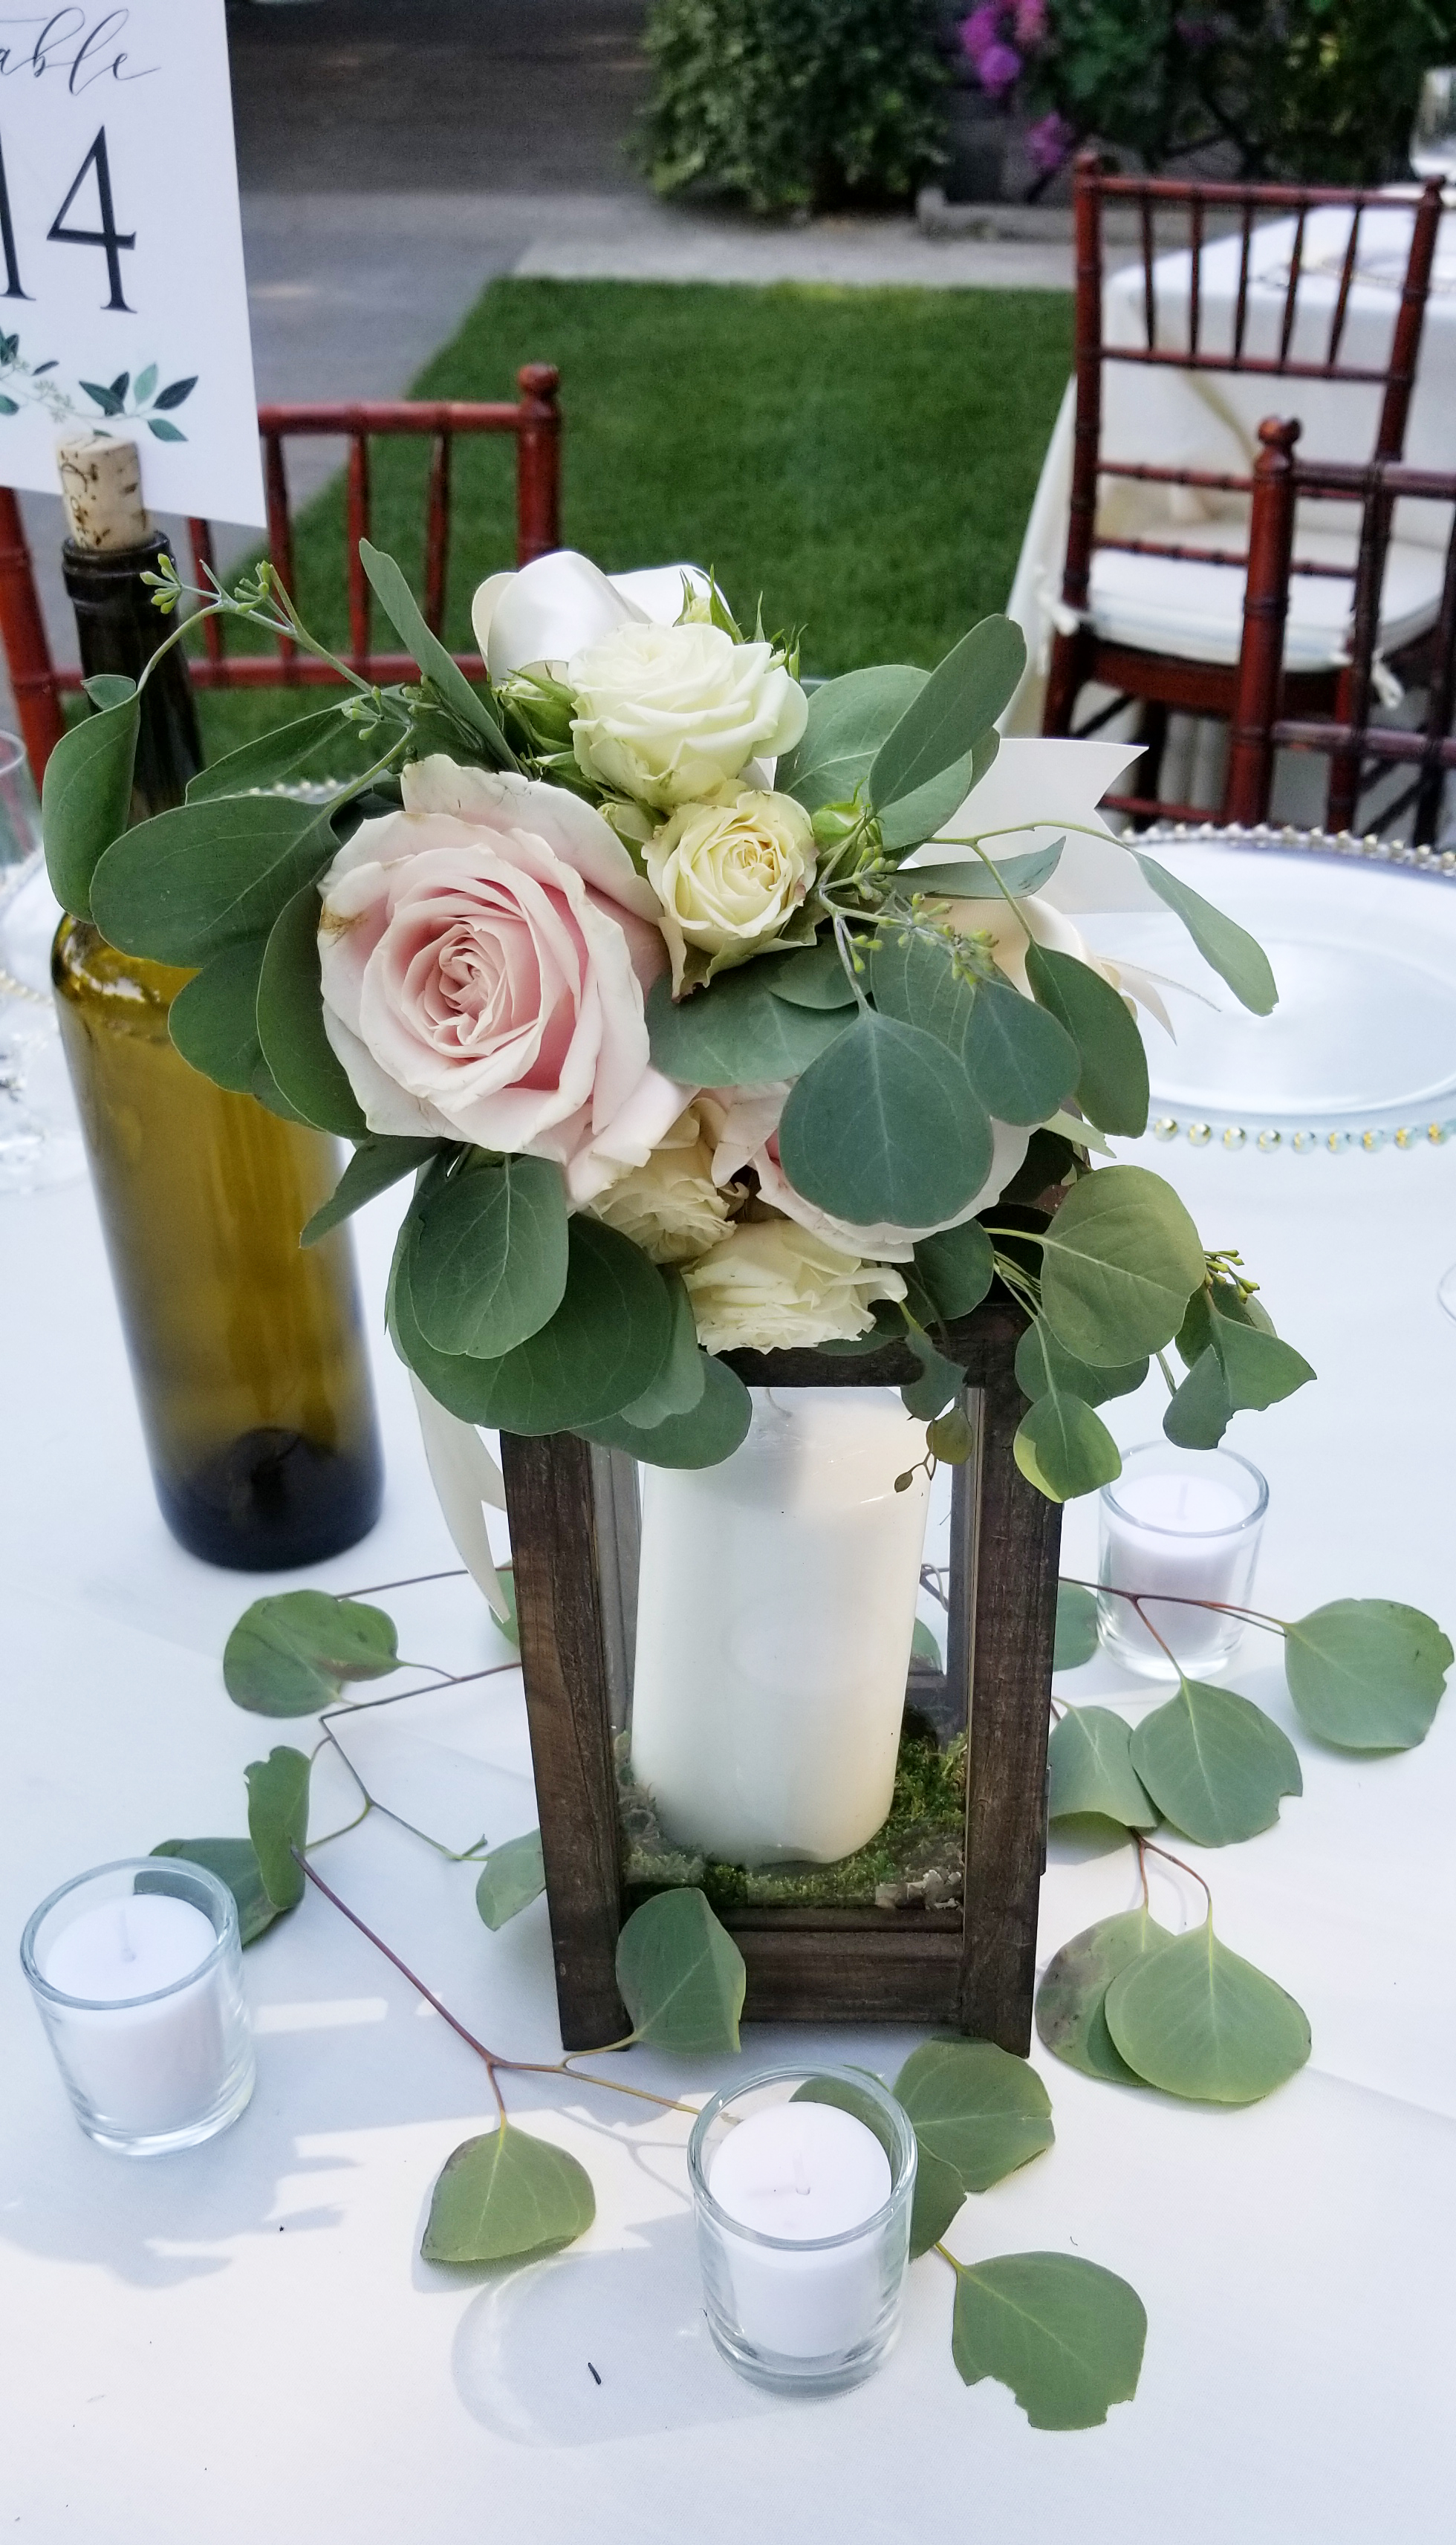 Centerpiece lantern with floral, small clutch of flowers and greens tied to the top of the lantern.